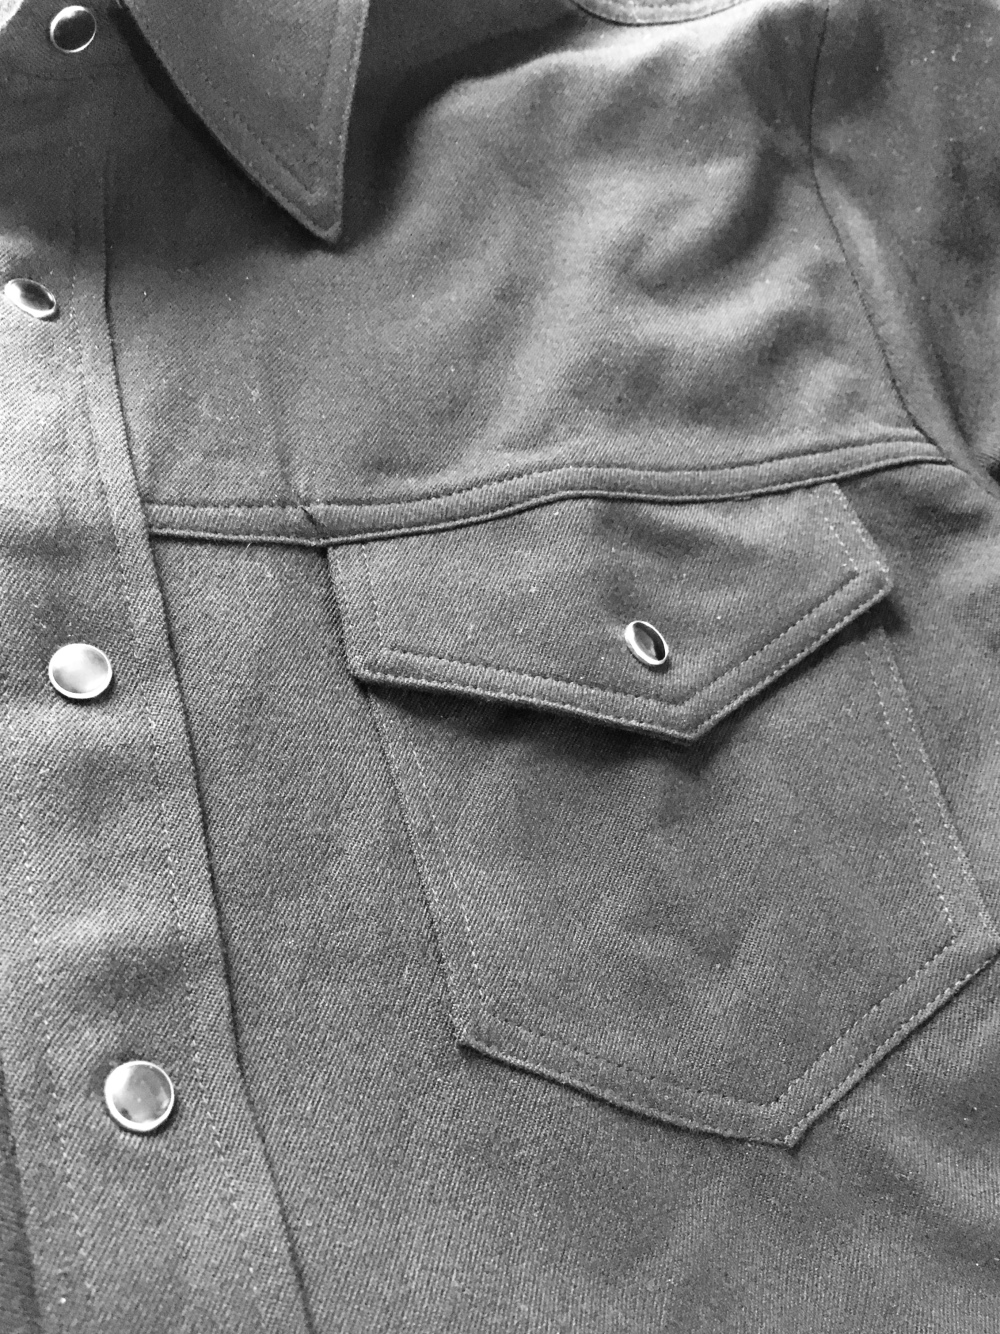 4348ab8859 Snap Button Shirt of the Day  Ramblers Way – Wool Western Gabardine ...